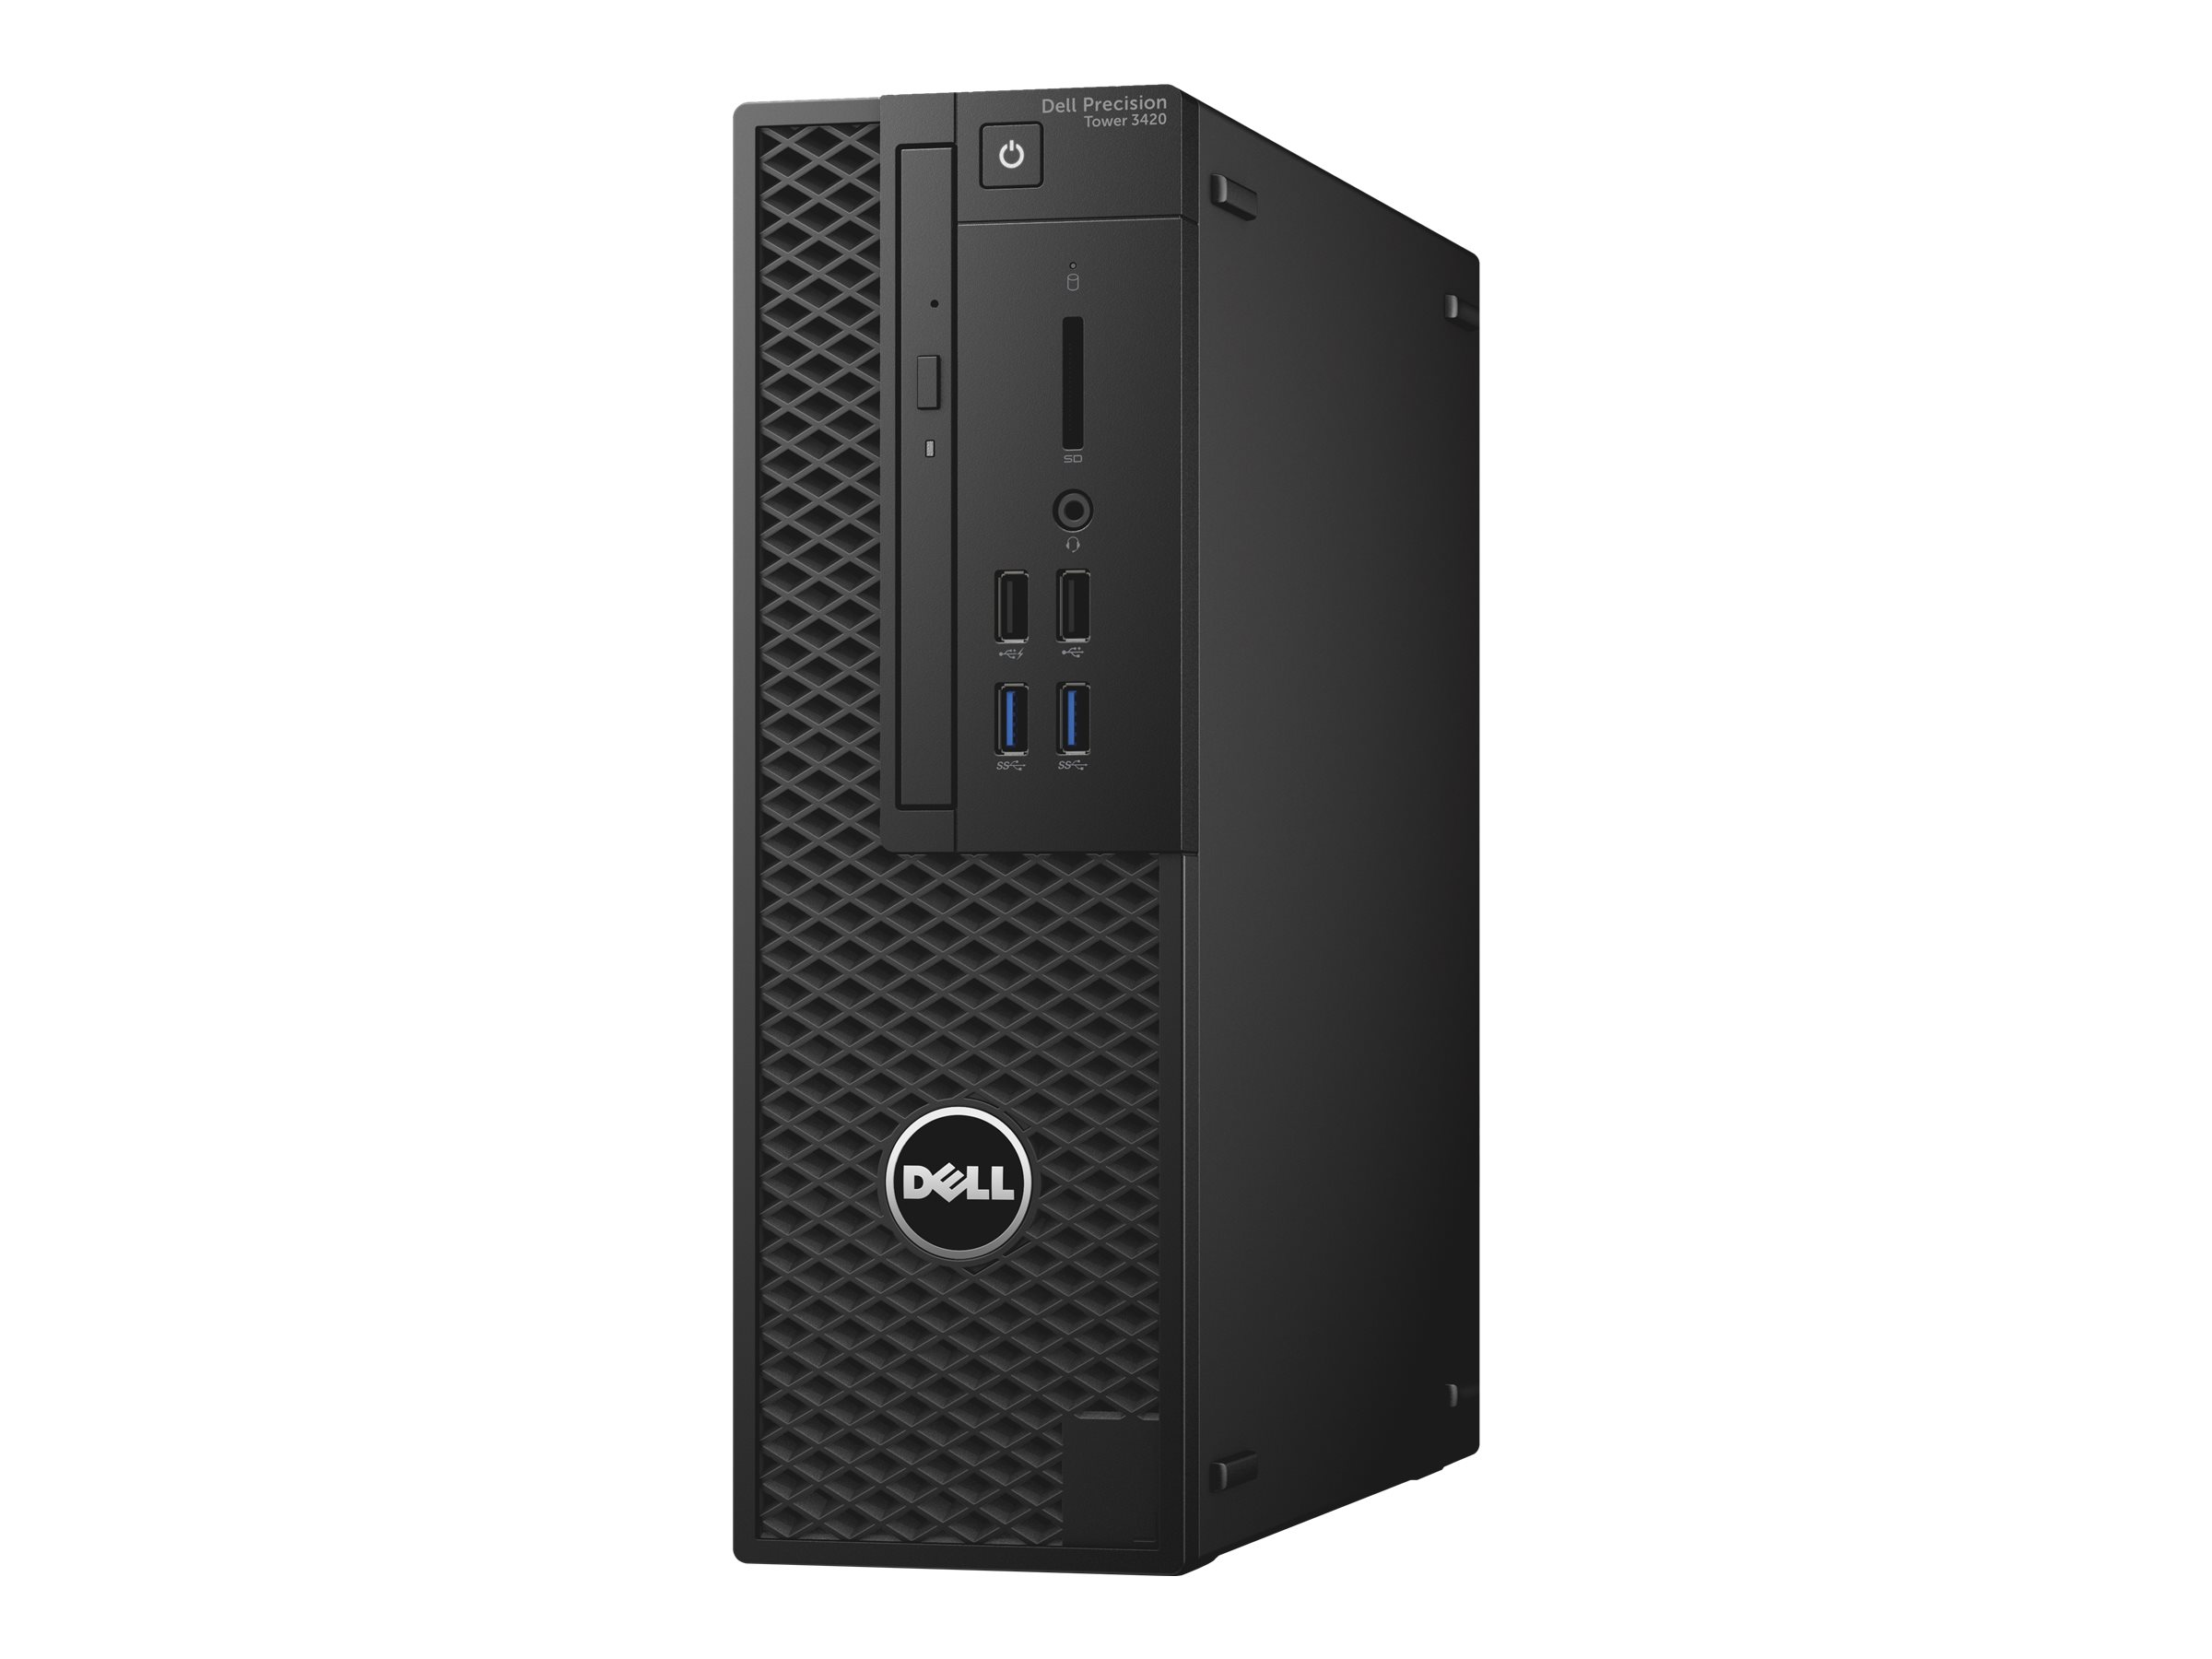 Dell Precision Tower 3420 - SFF - 1 x Core i5 6500 / 3.2 GHz - RAM 8 GB - HDD 1 TB - DVD-Writer